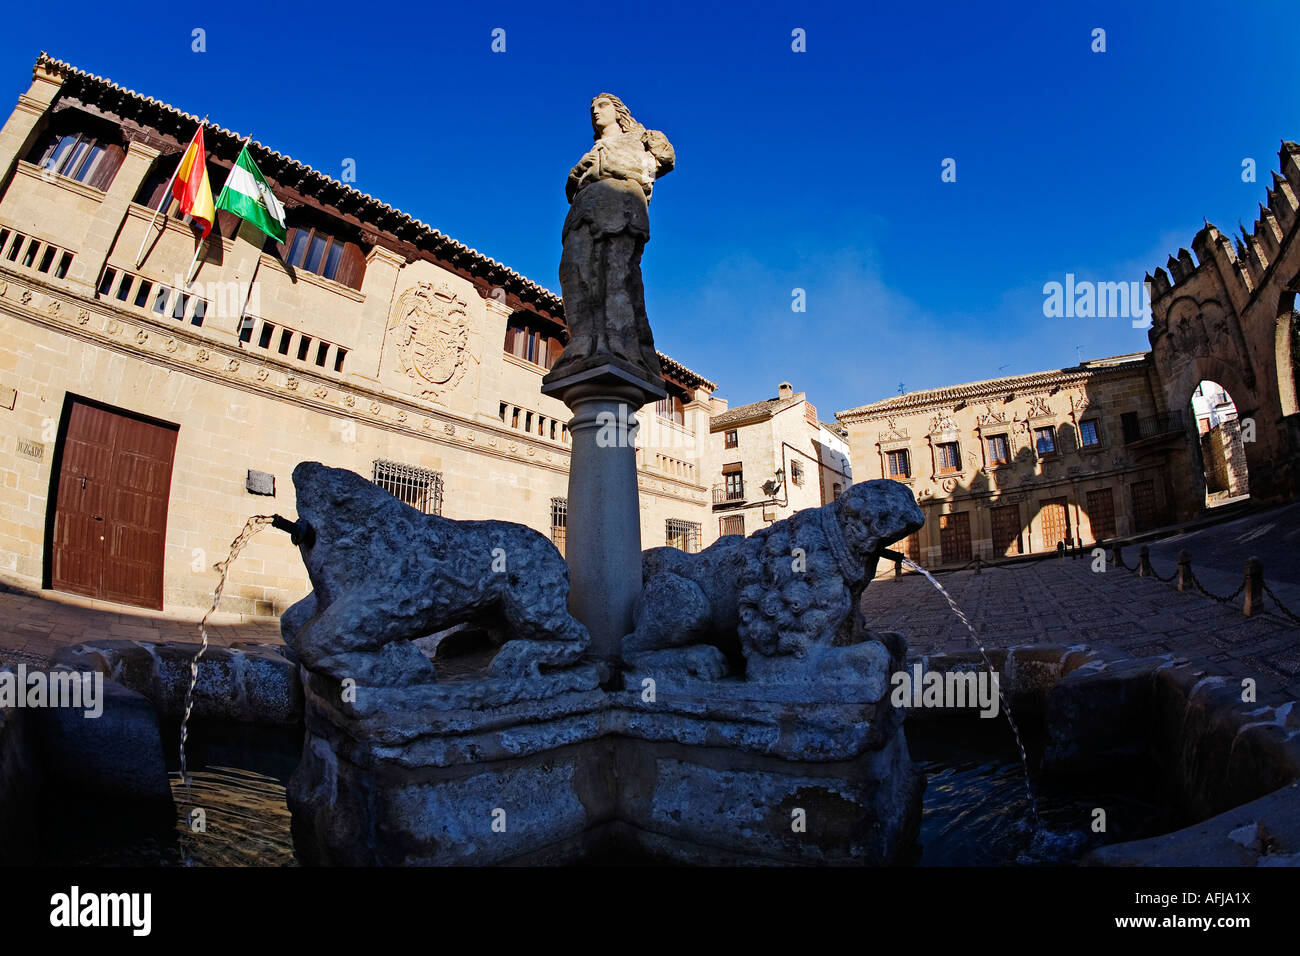 ource of the lions square of populo old slaughters baeza patrimony of humanity jaen Andalusia Spain - Stock Image